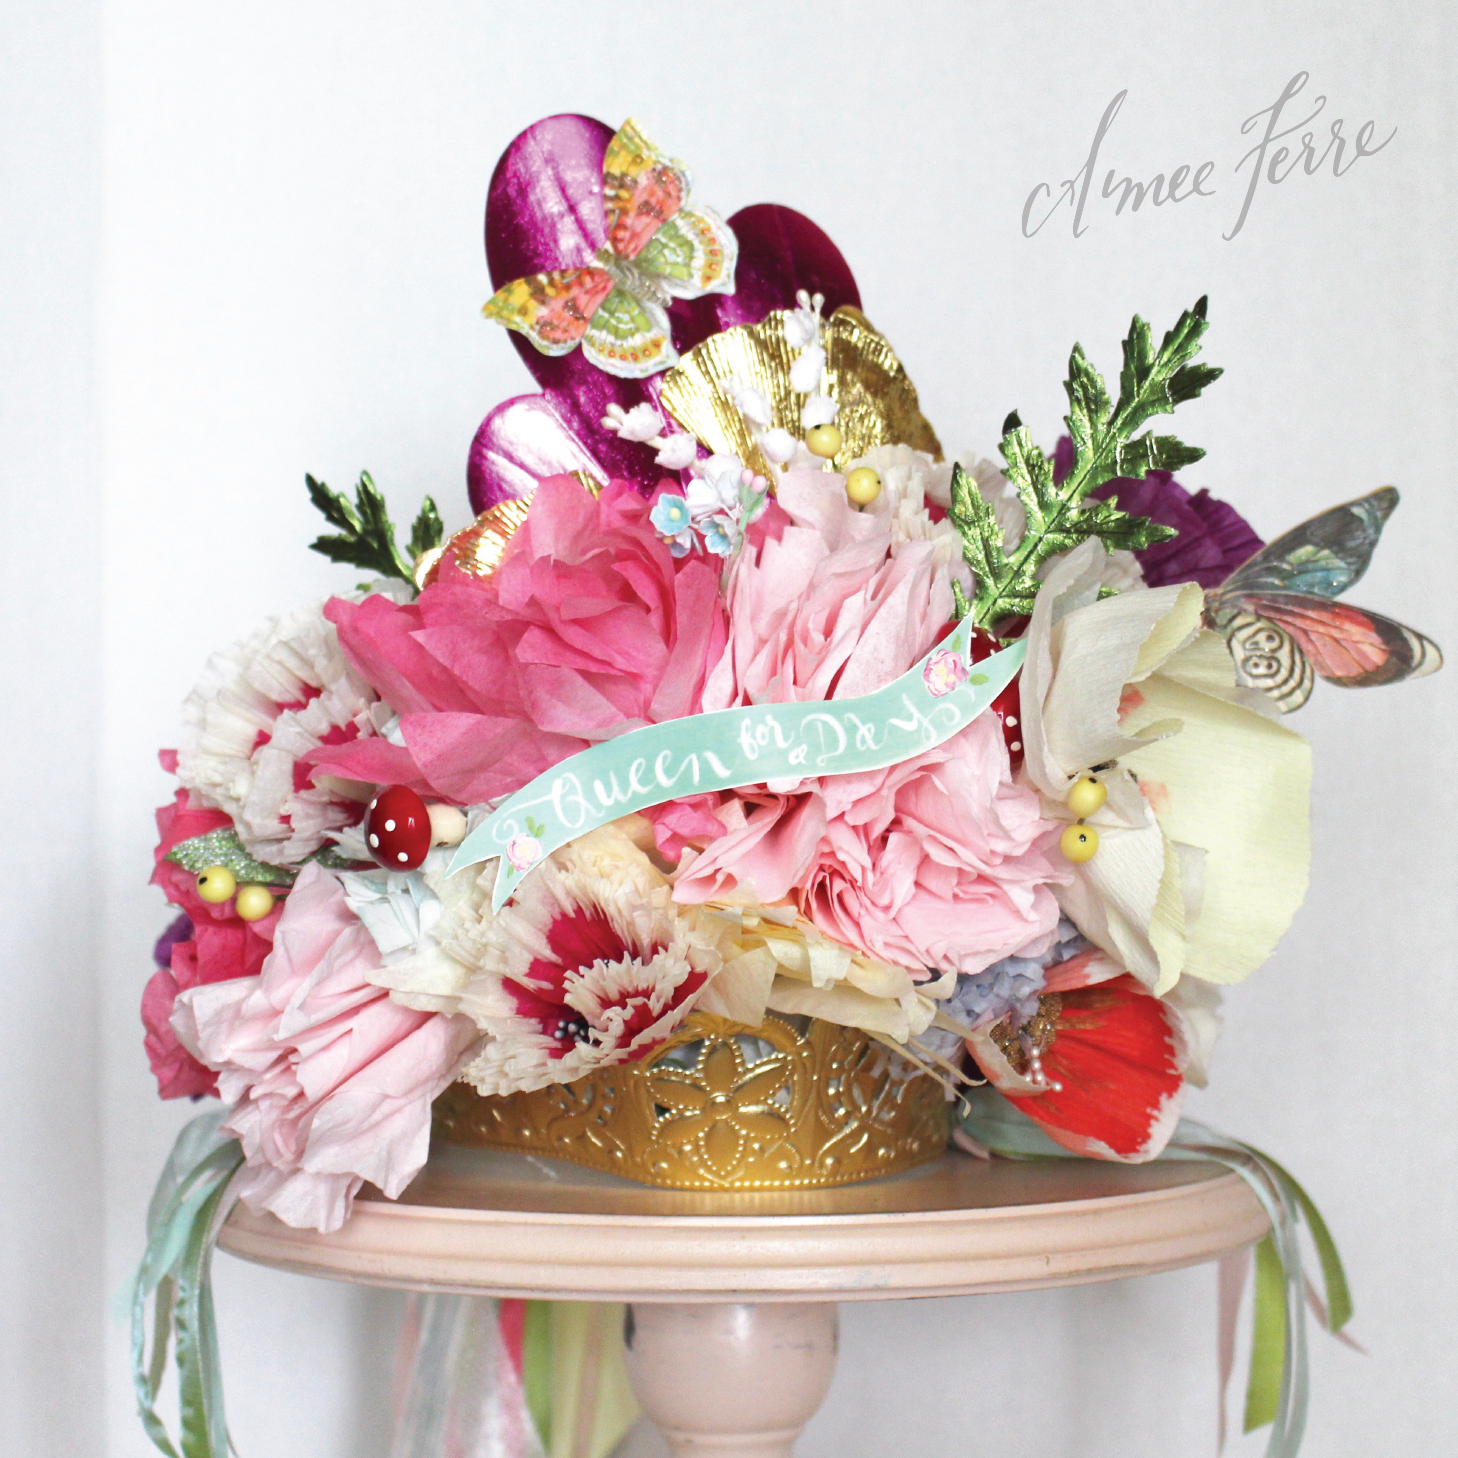 Mothers day archives aimee ferre c is for crowns and coupons let us not underestimate the value of a handmade taj mahal of crowns i have been making flower crowns for my girlfriends over izmirmasajfo